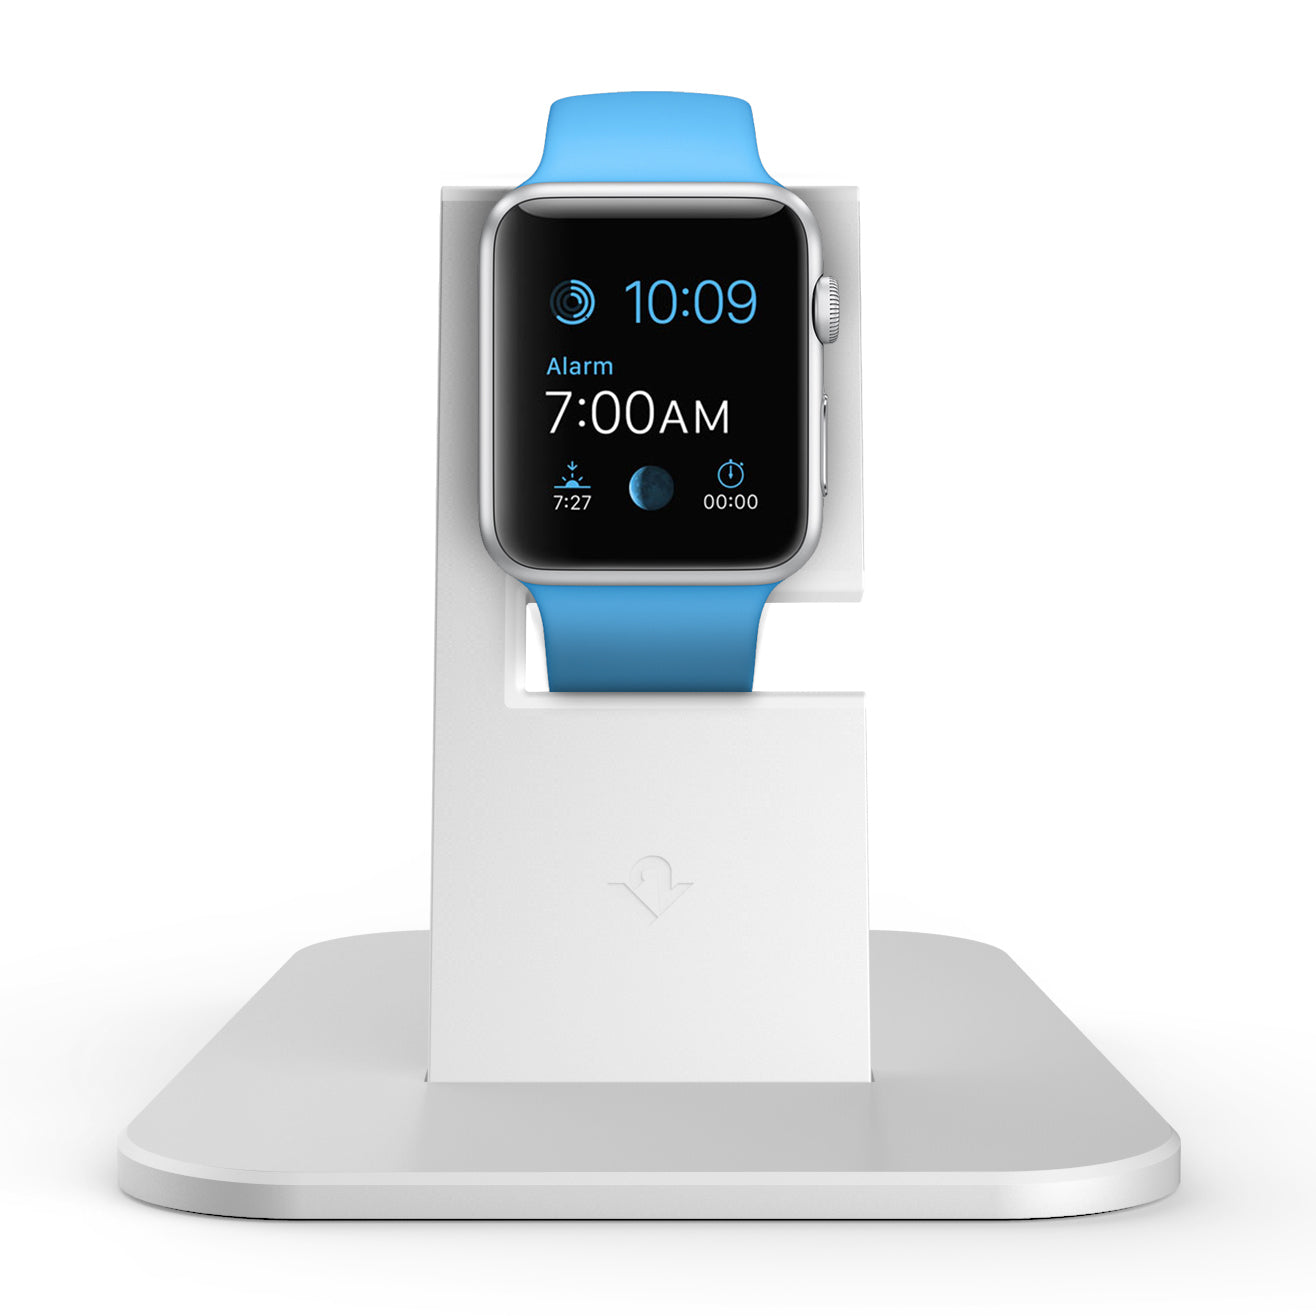 Introducing HiRise for Apple Watch